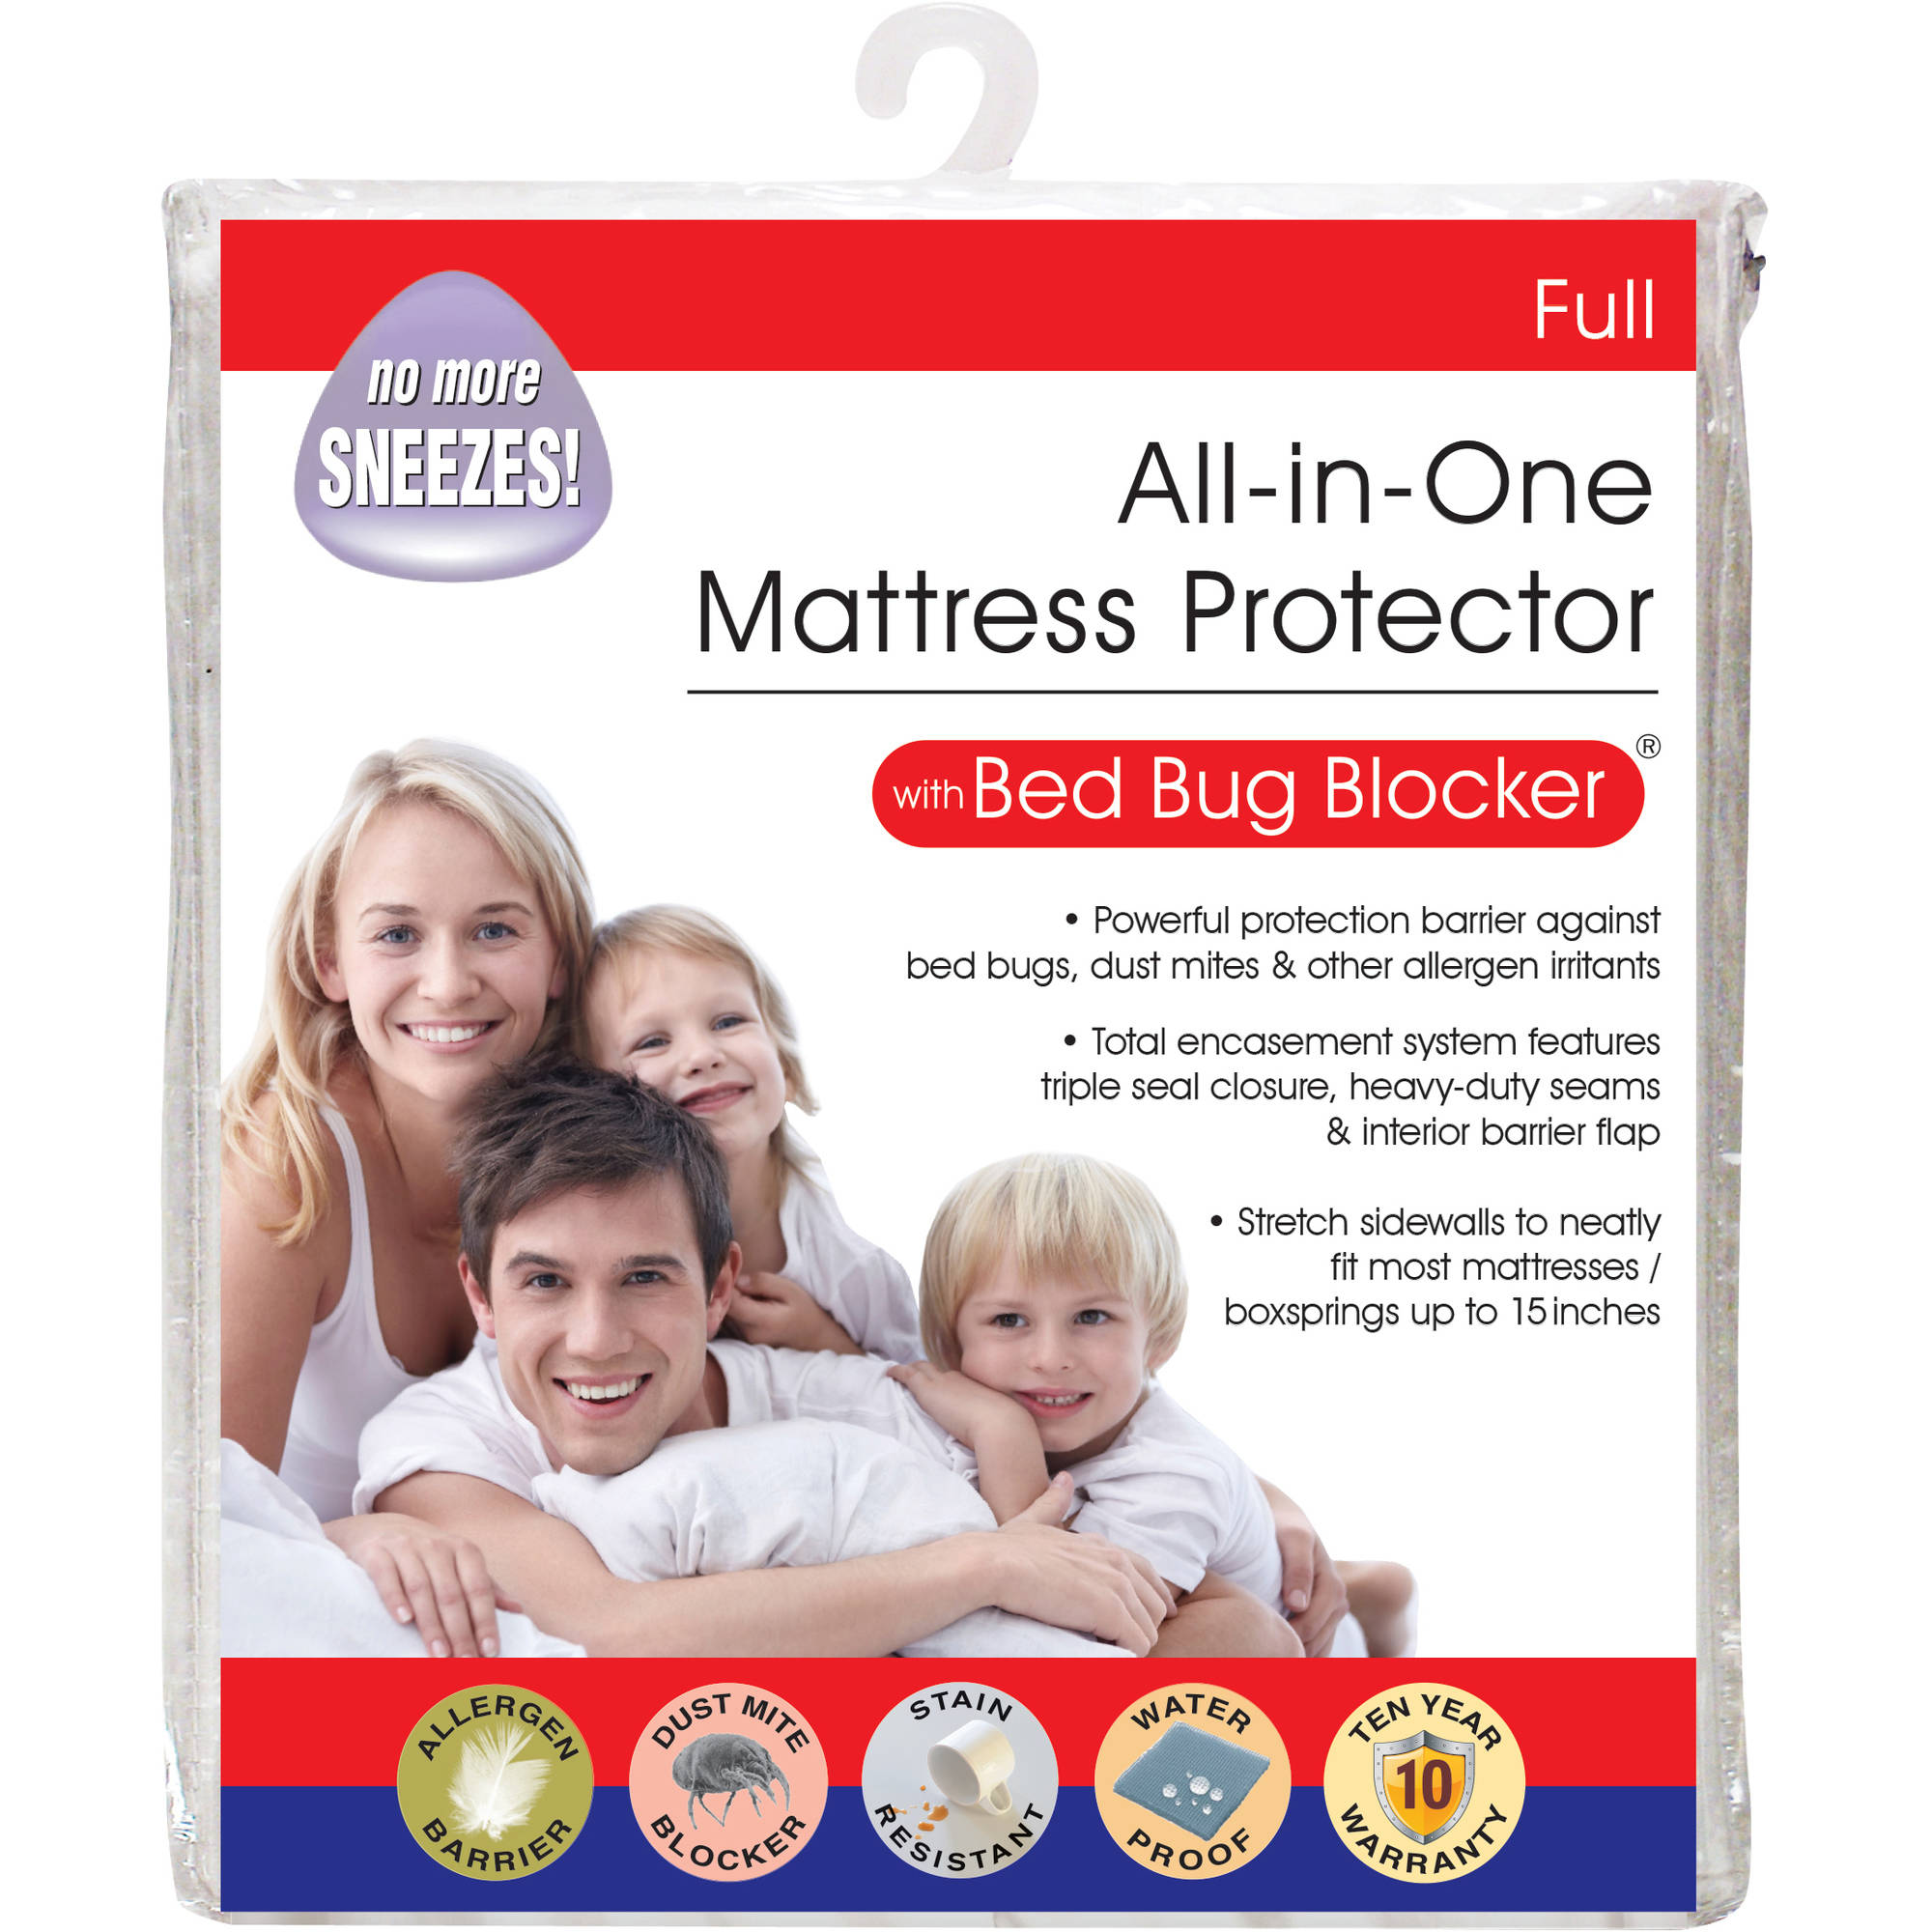 Luxury Cotton Rich Bed Bug Blocker Zippered Mattress Protector - Walmart.com